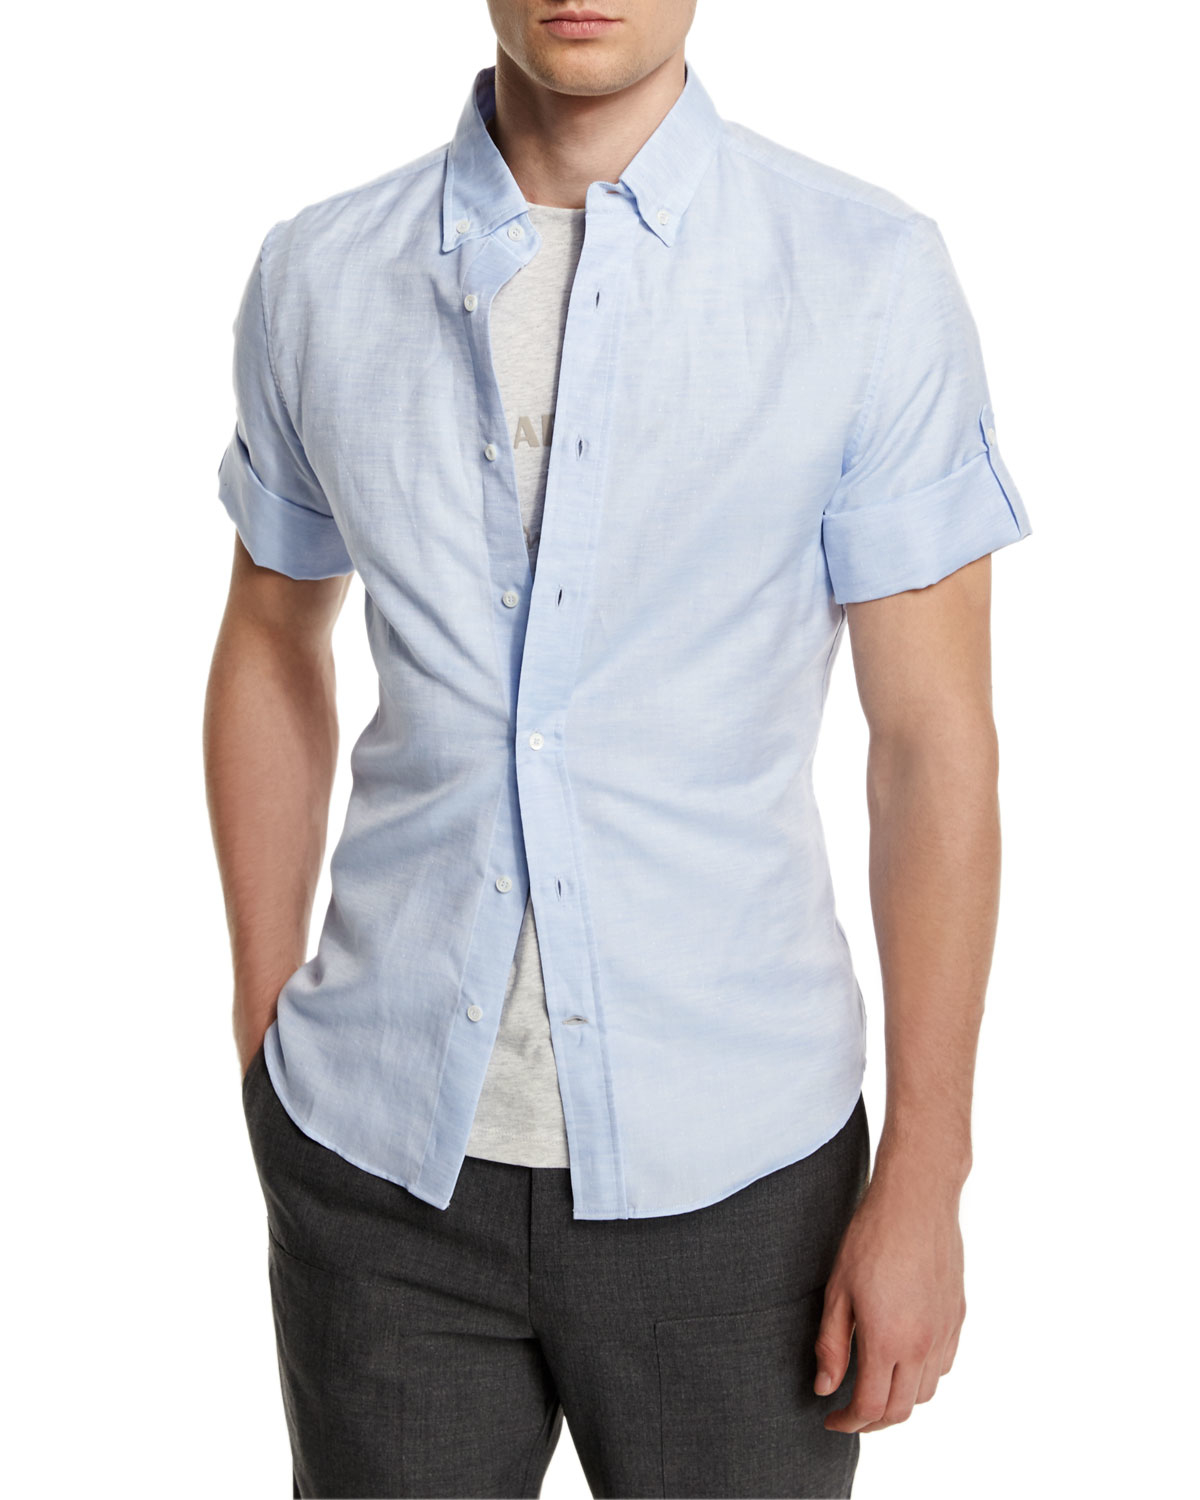 Powder Blue Button Down Shirt | Is Shirt